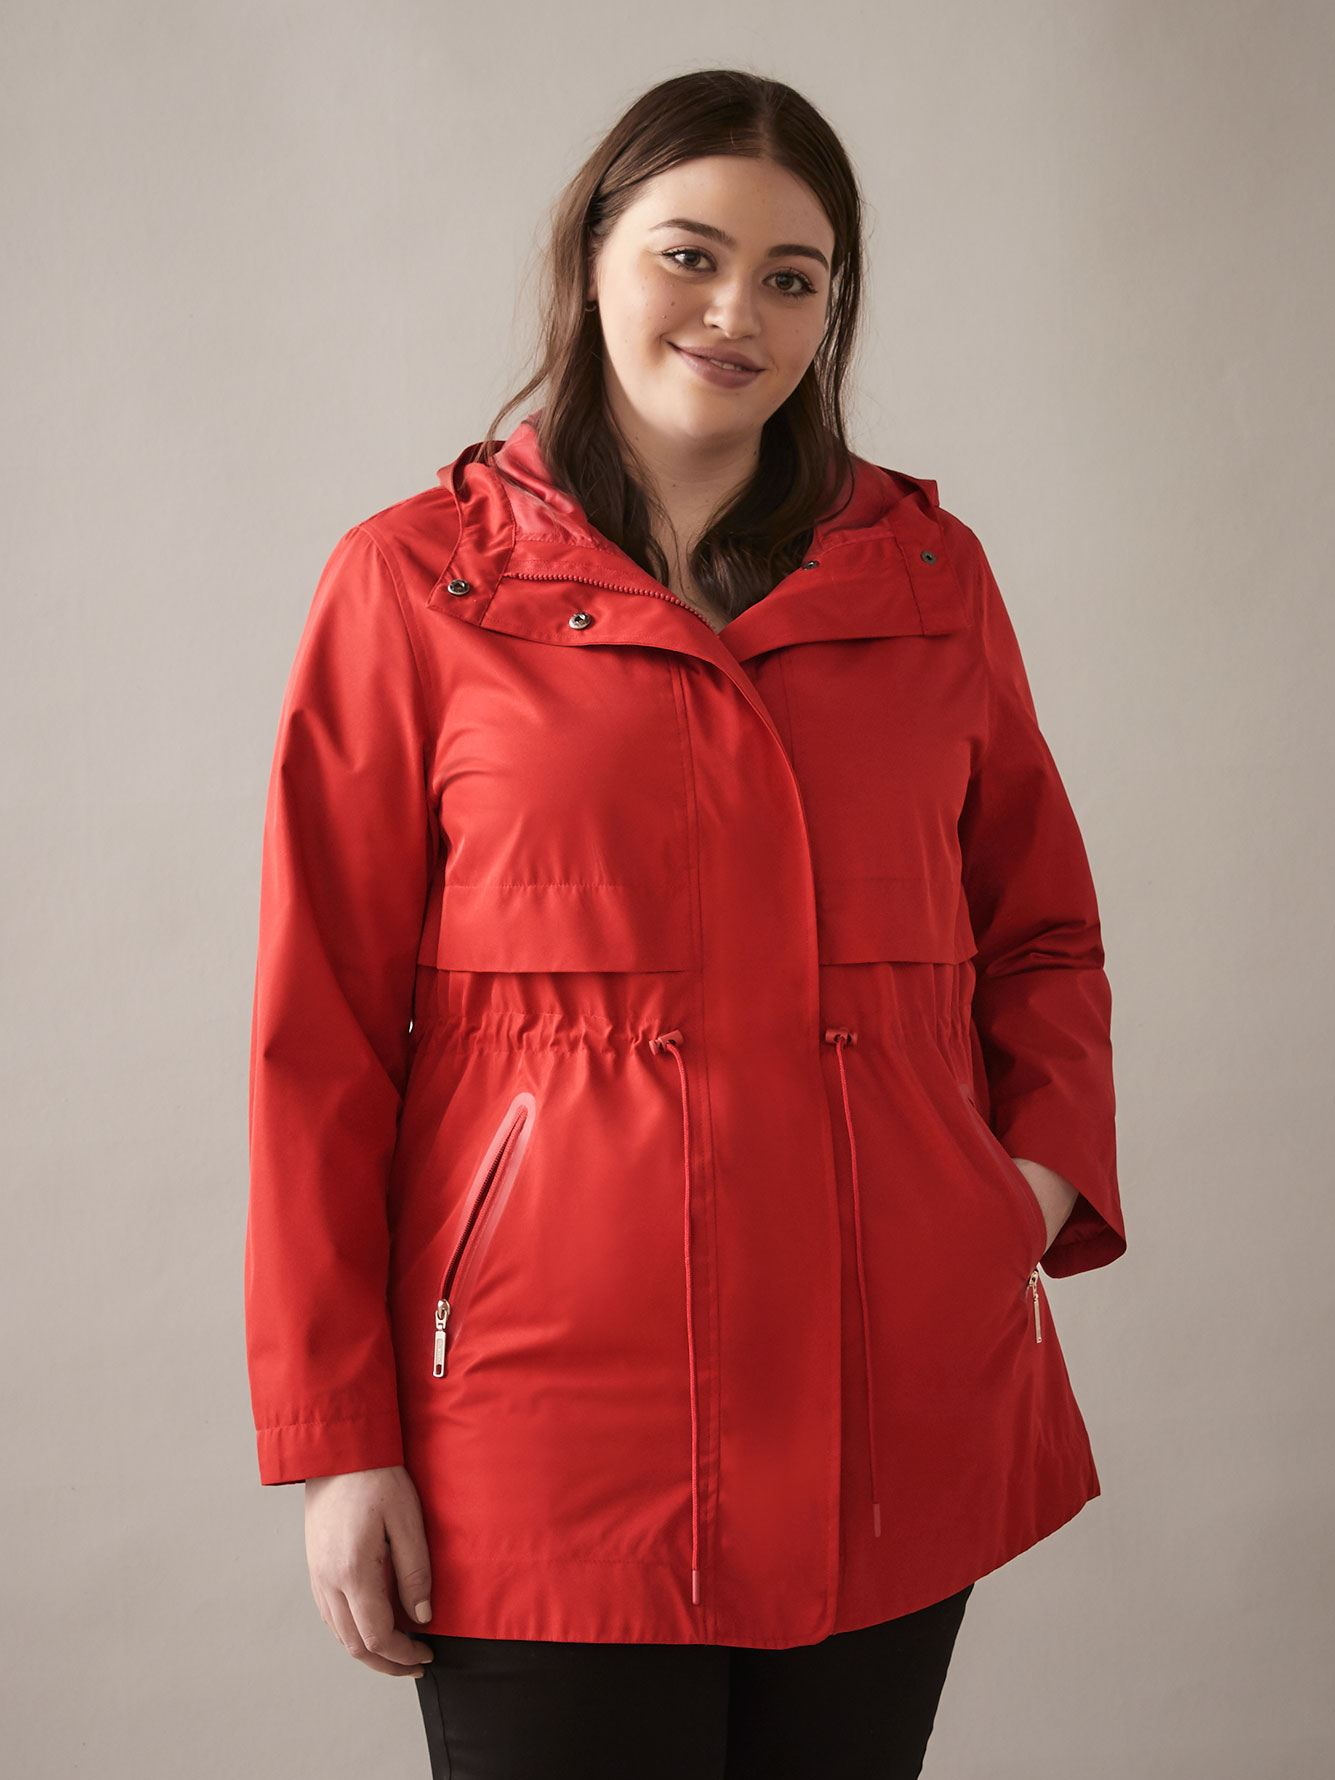 Mid-Length Essential Raincoat - In Every Story